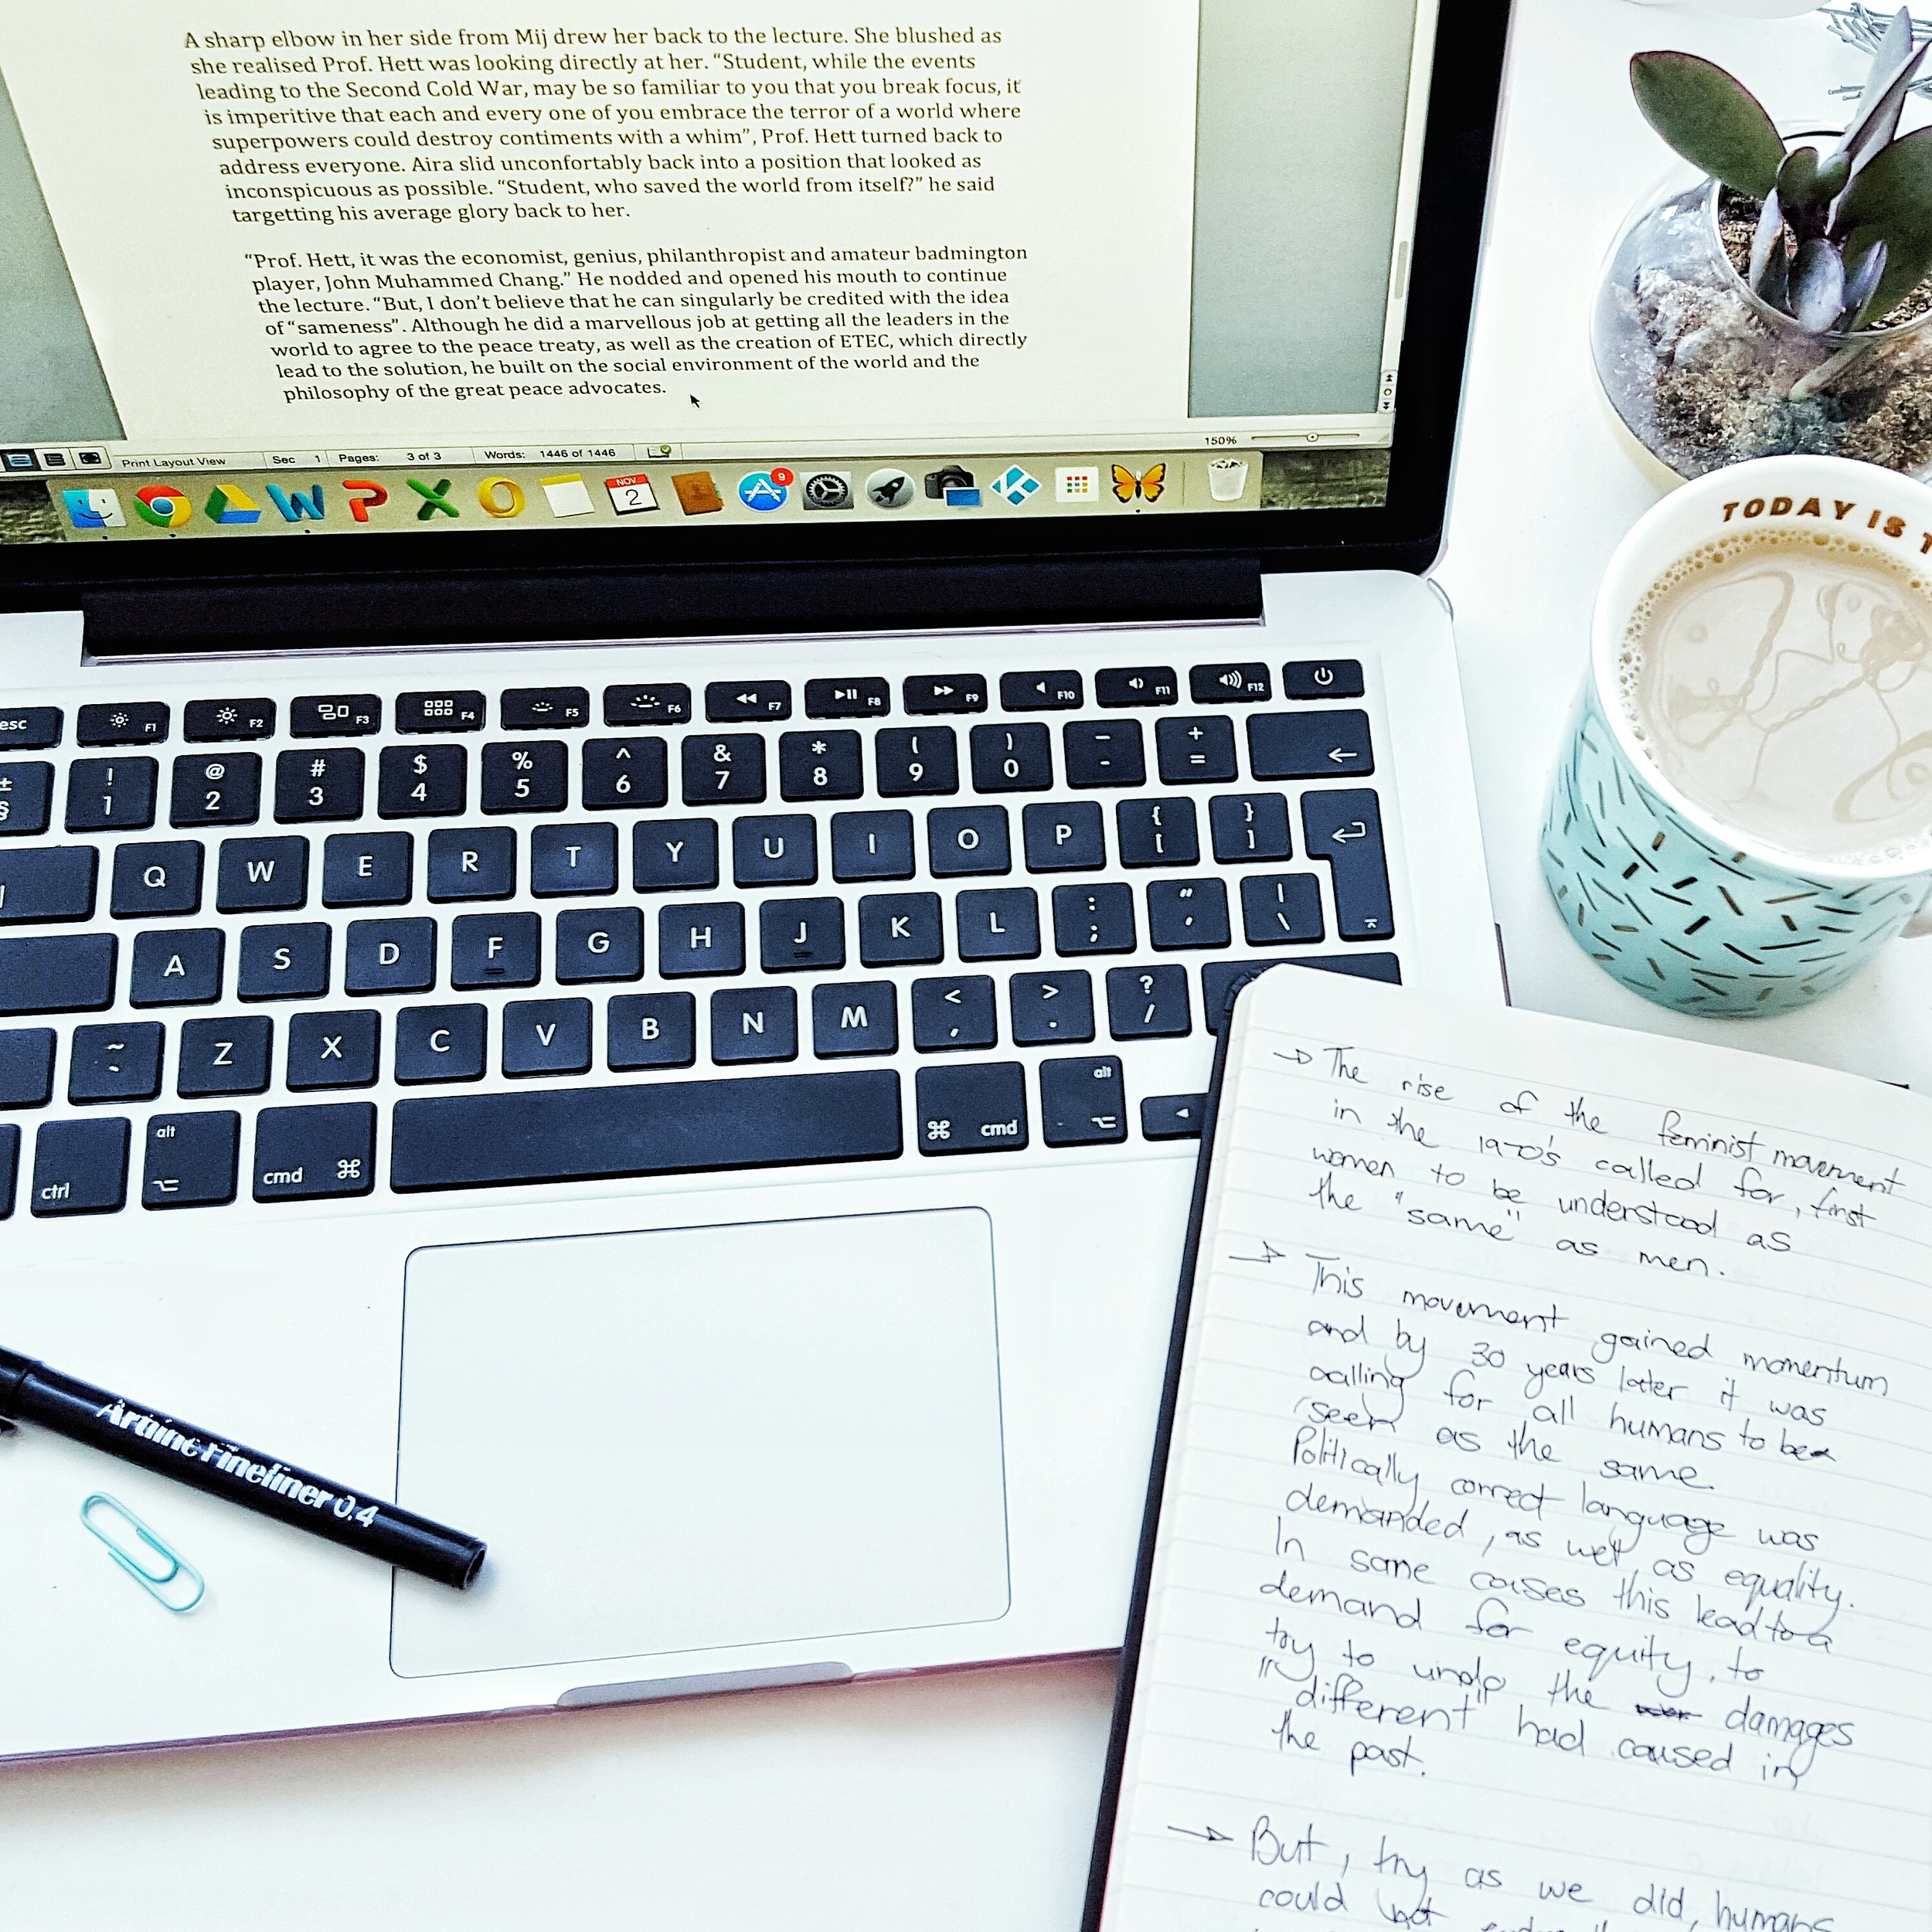 One of the best ways to procrastinate: Arrange your workspace to Instagram it and wait for the positive feedback.